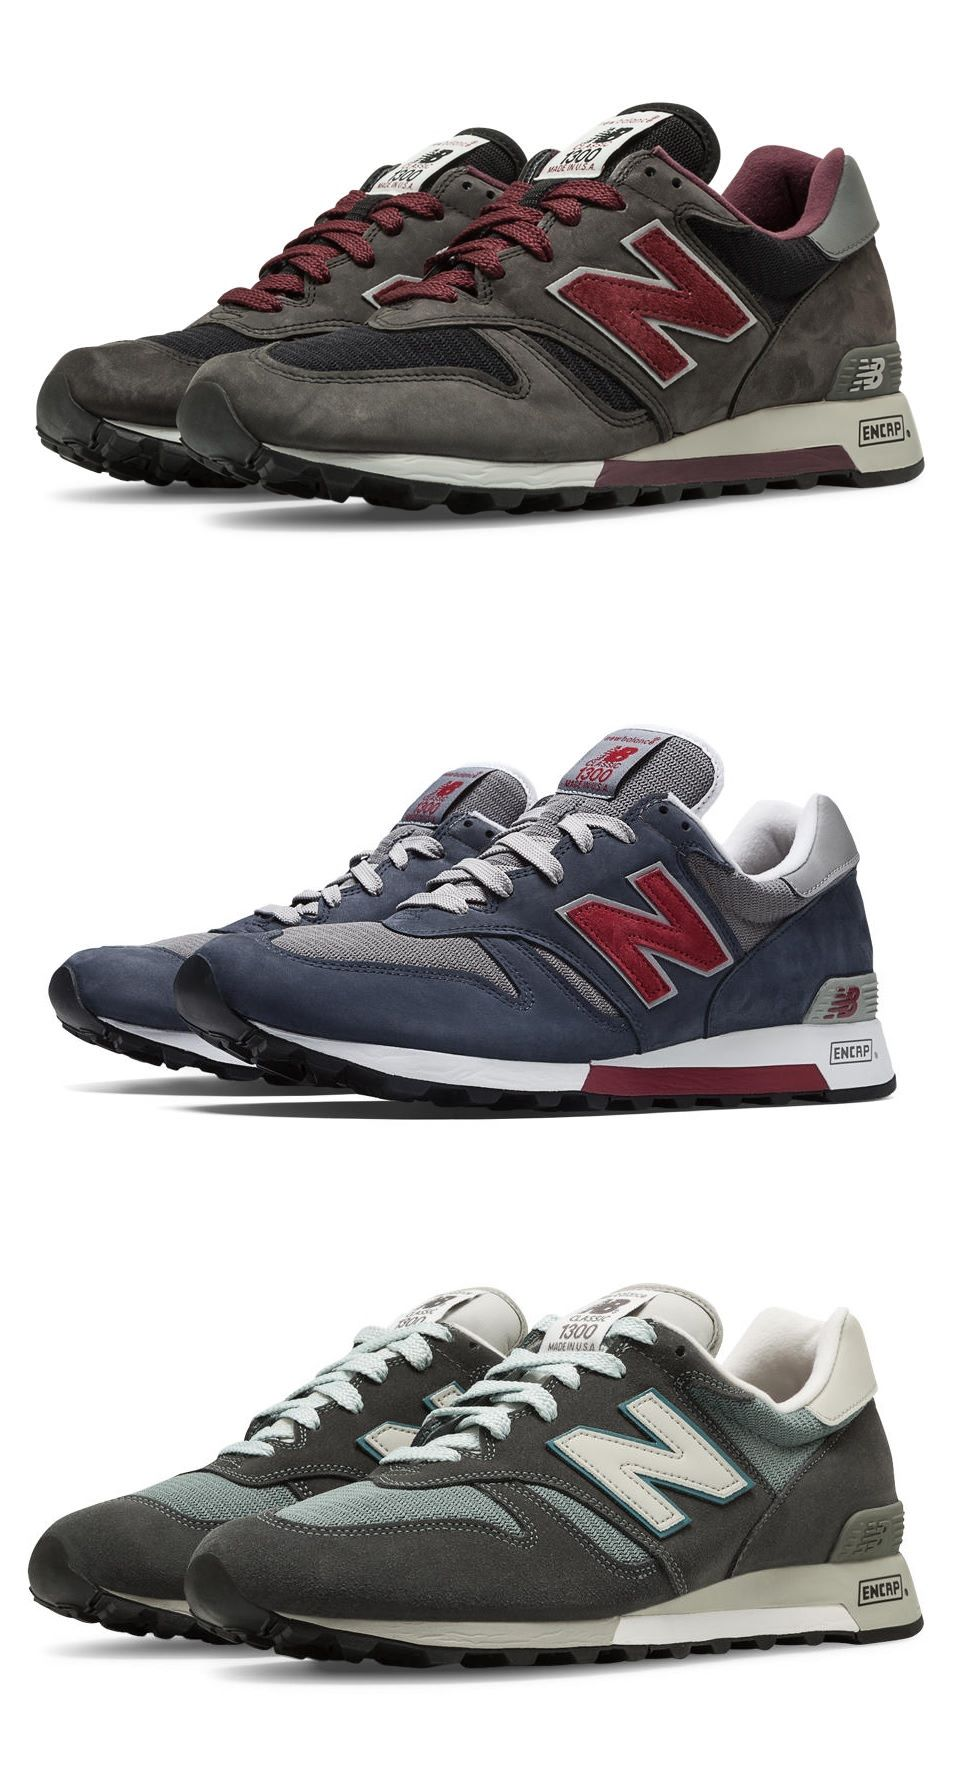 New Balance M1300 Made in USA | New balance shoes men, Shoes